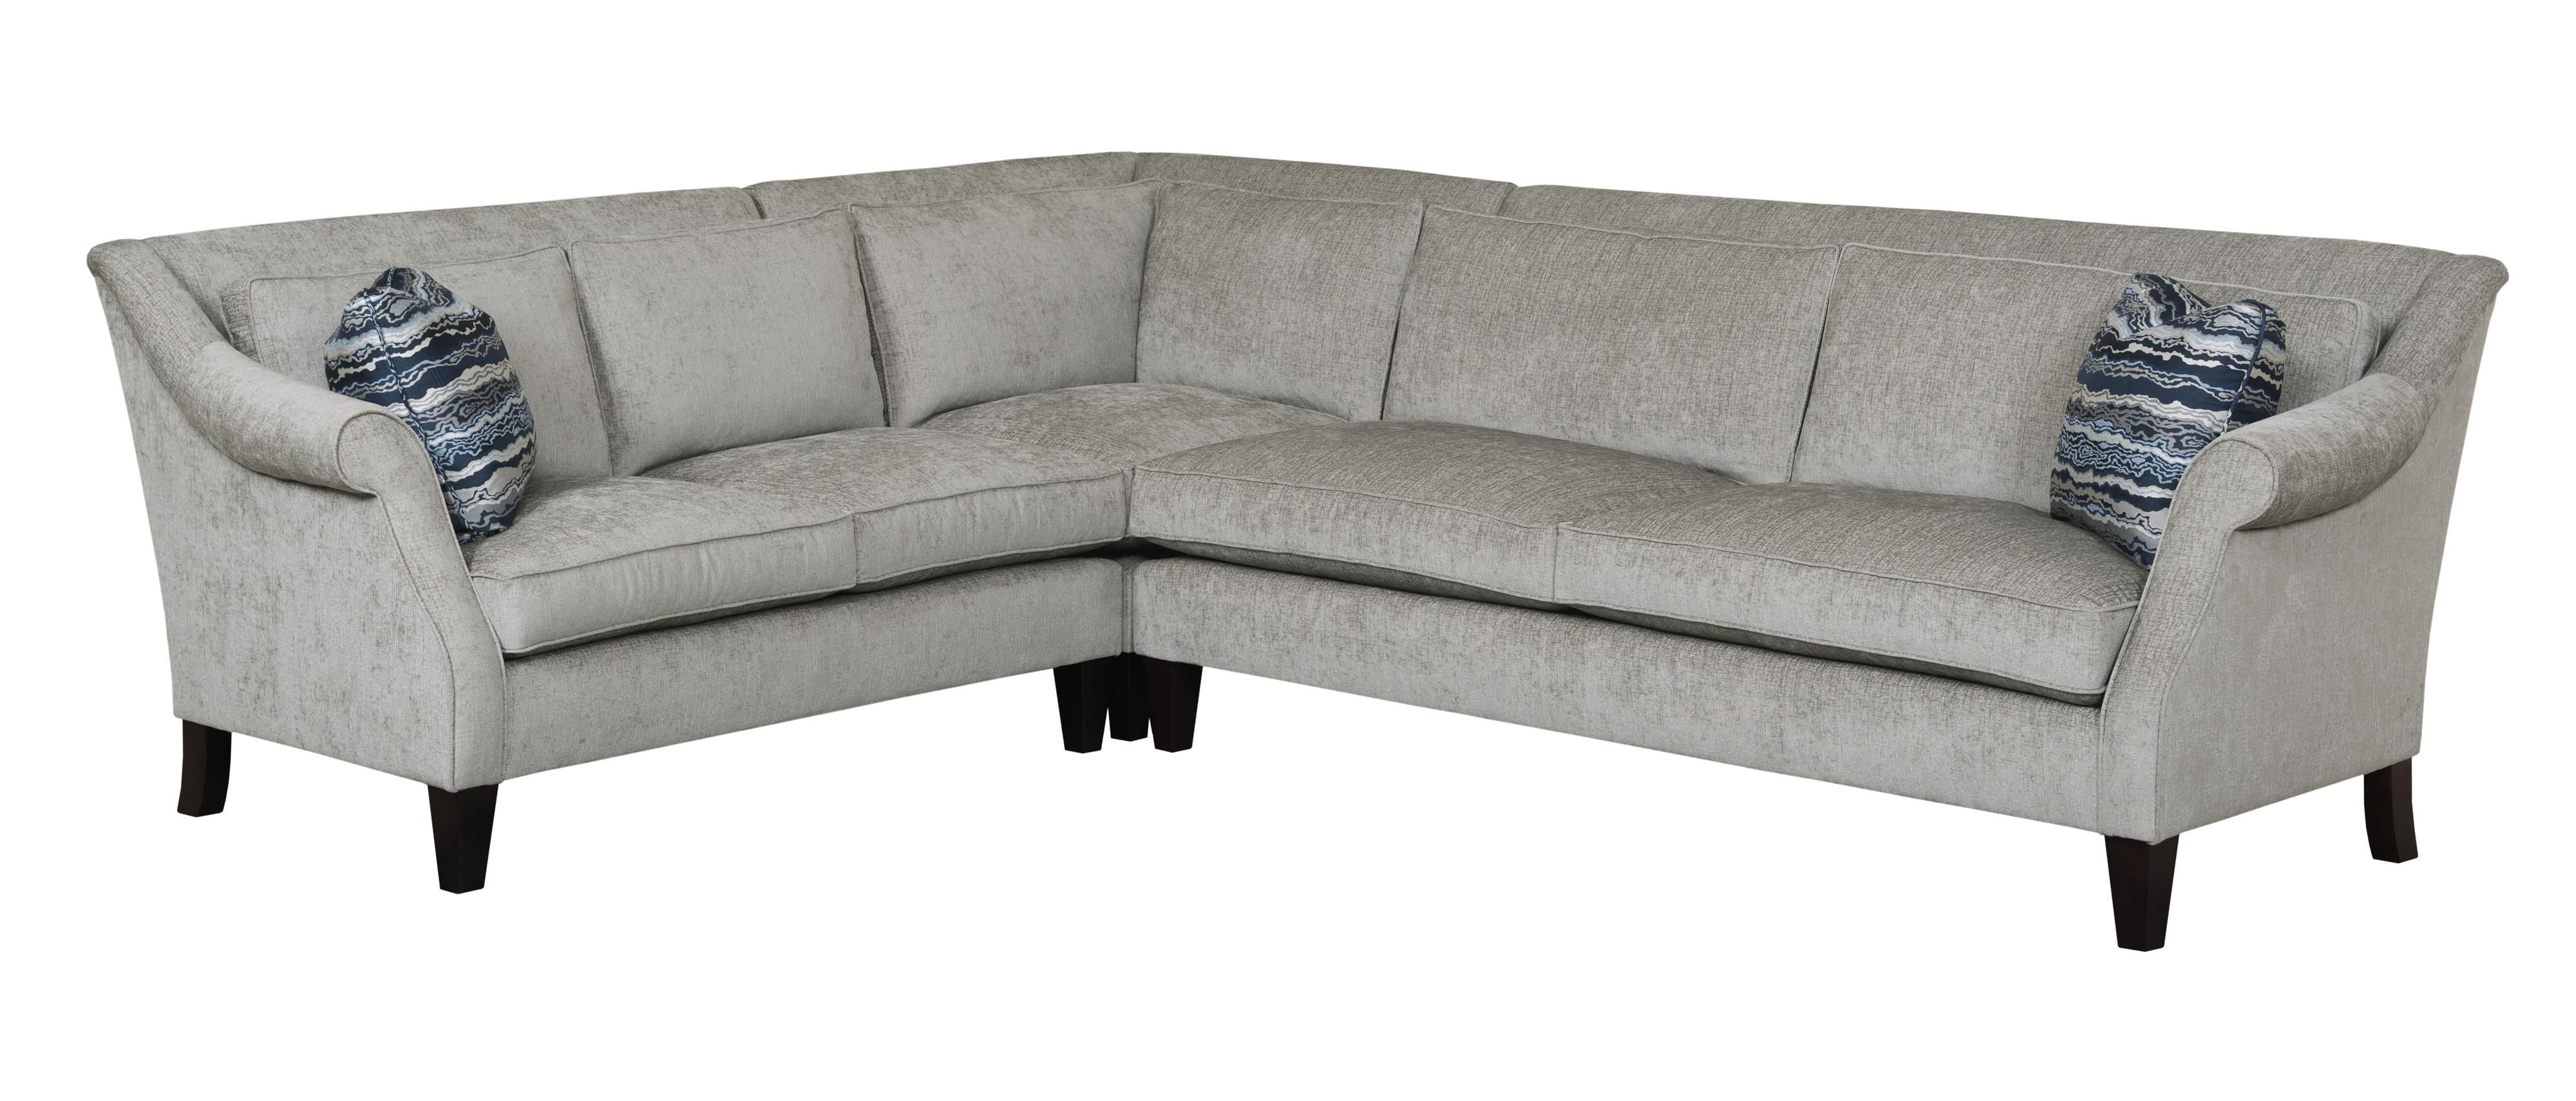 Classic Gray L Shaped Sectional Sofa Design Ideas for Living Room